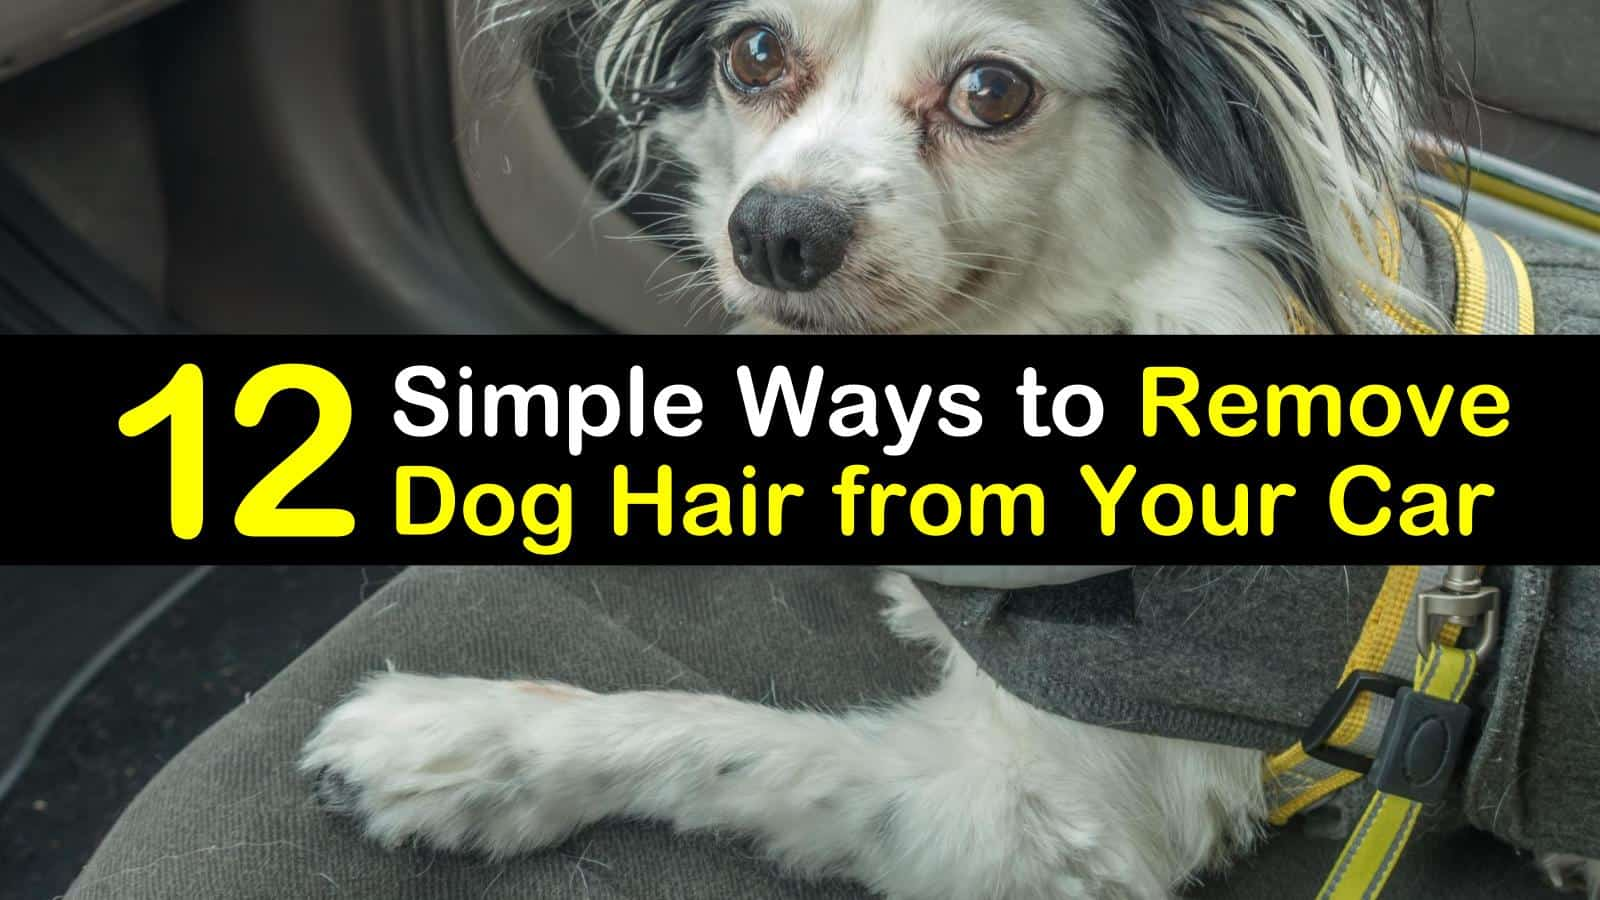 how to remove dog hair from car titleimg1